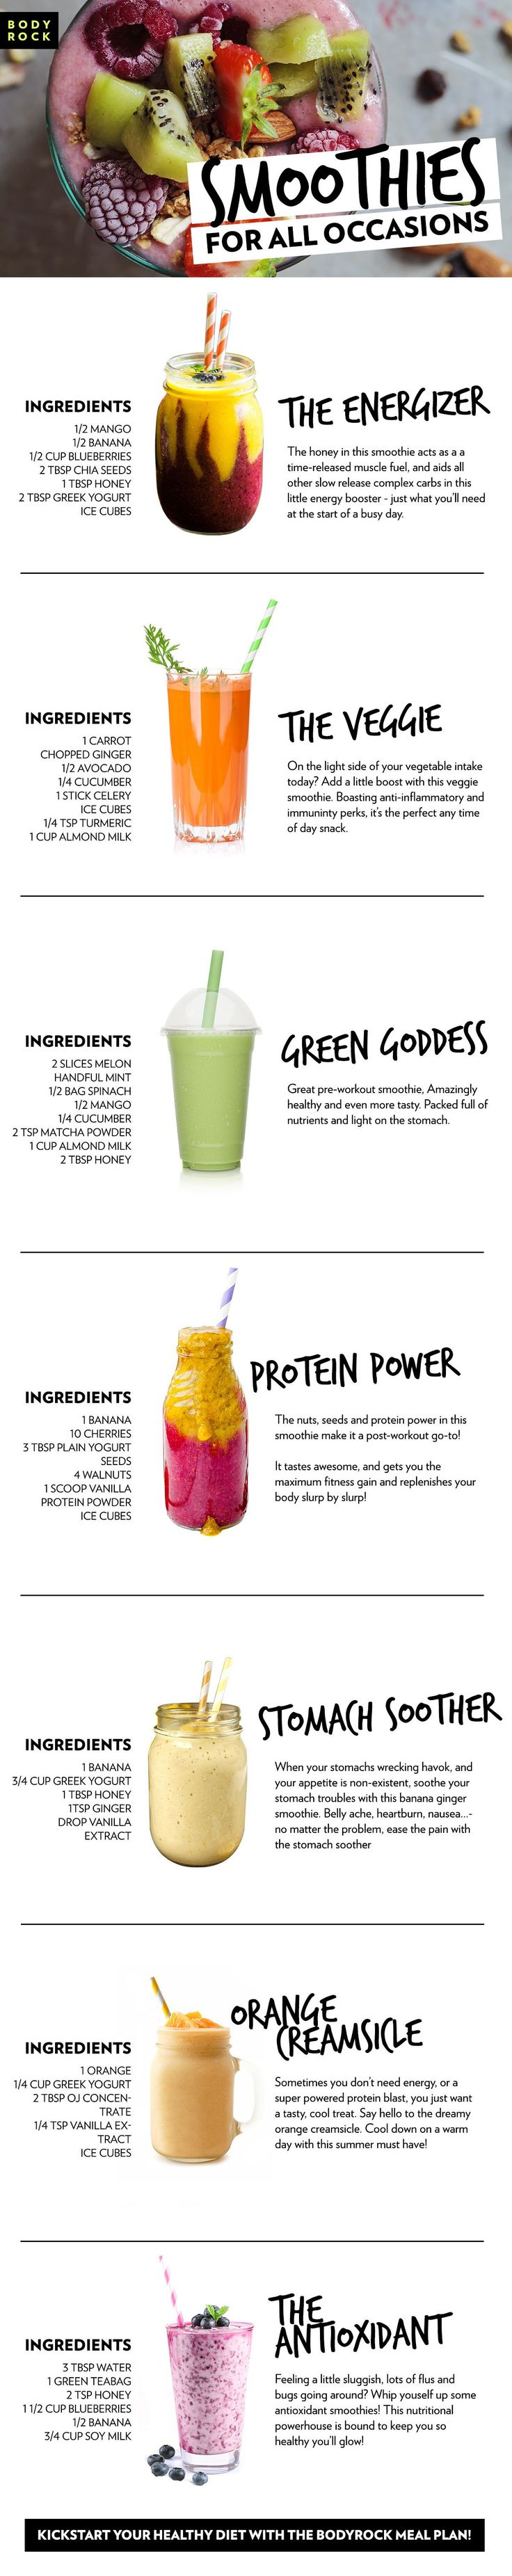 A smoothie for all occasions! Whether you need an energy boost, or a post-workout snack, check out these awesome smoothie recipes. Improve your diet and health with the BodyRock meal plan!